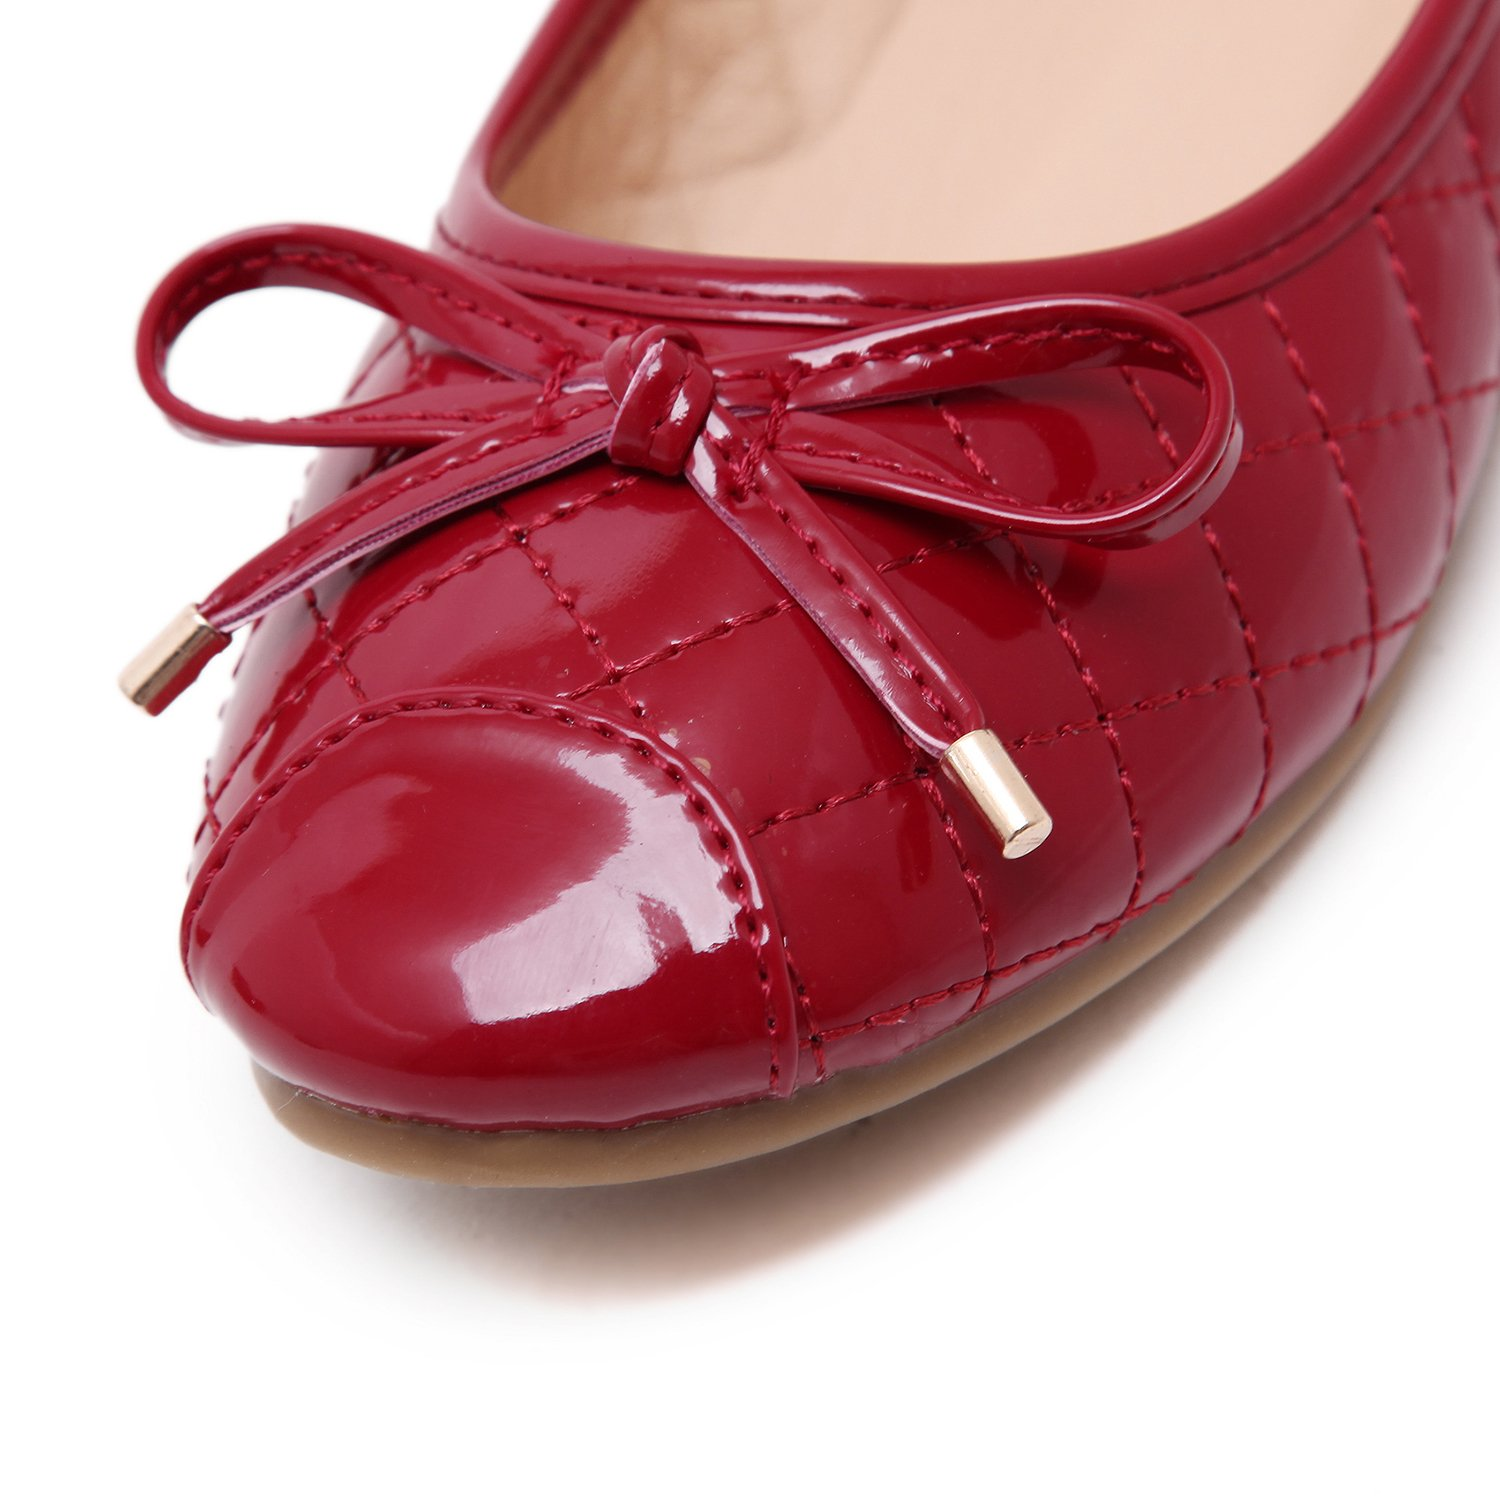 DQQ Womens Red Foldable Ballet Shoes 8.5 US